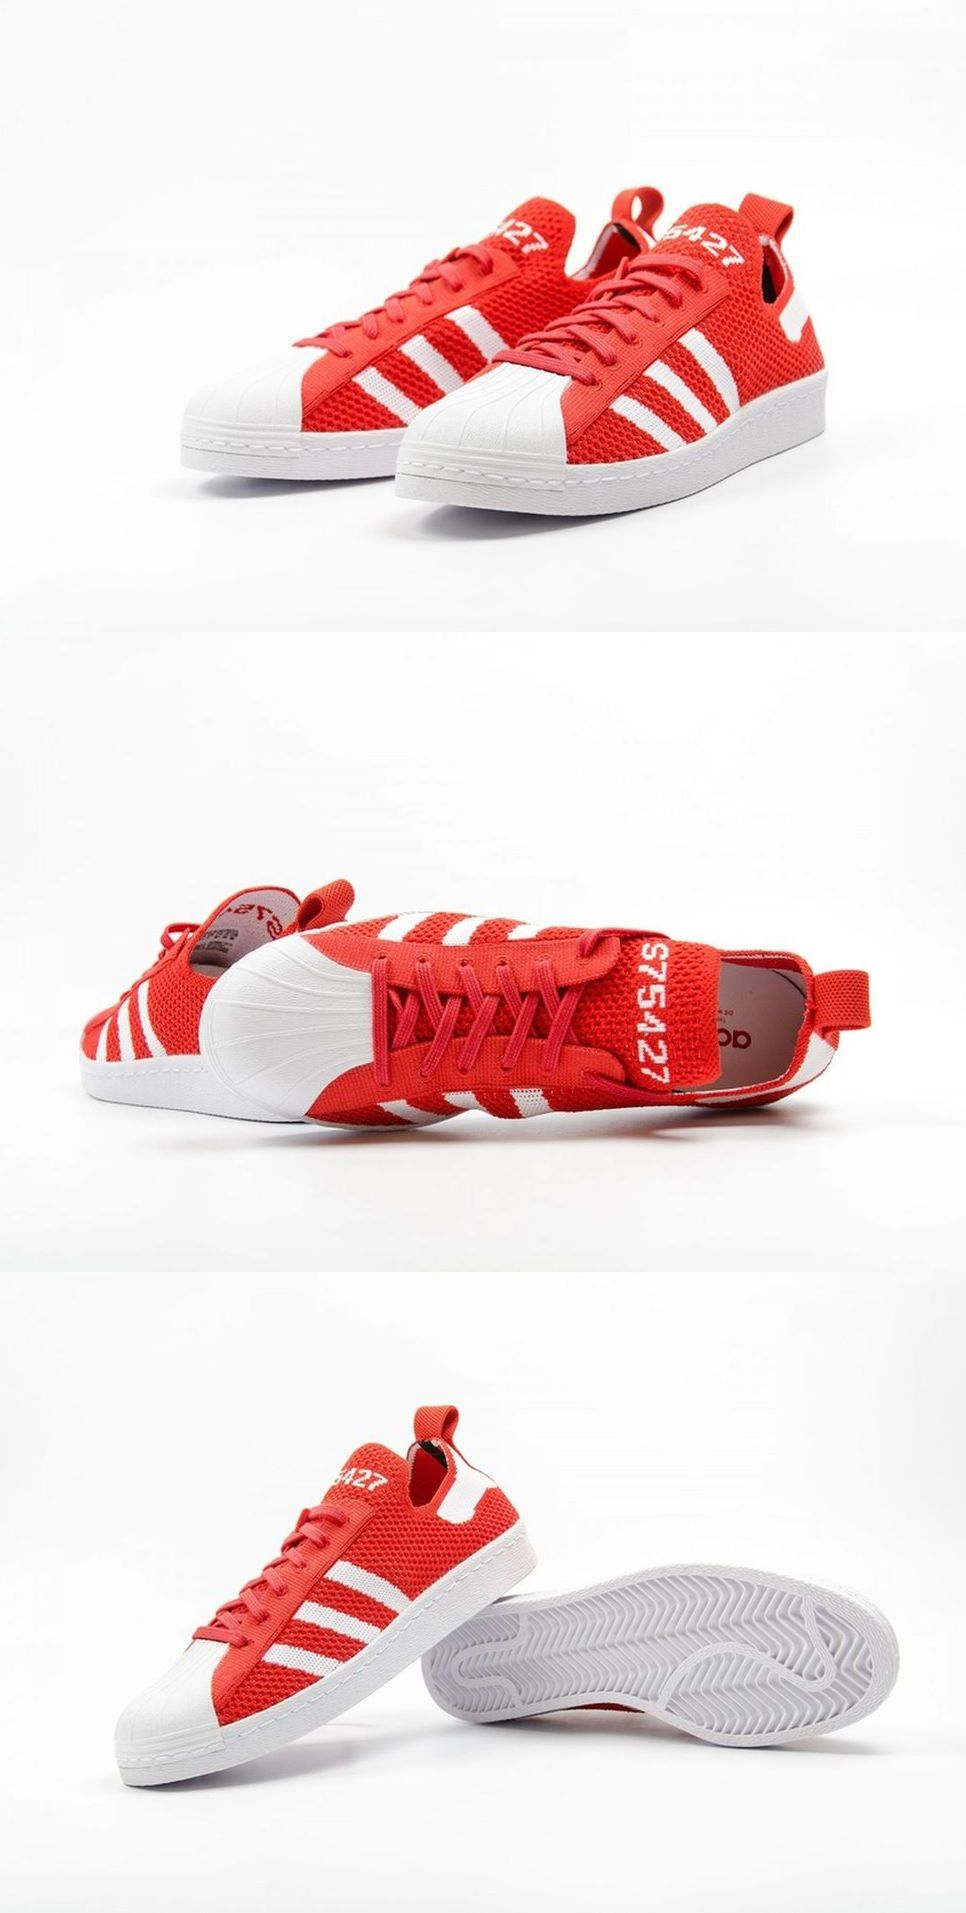 Adidas Originals Superstar 80s Primeknit Red White Adidas Shoes Superstar Sneakers Fashion Sand Shoes